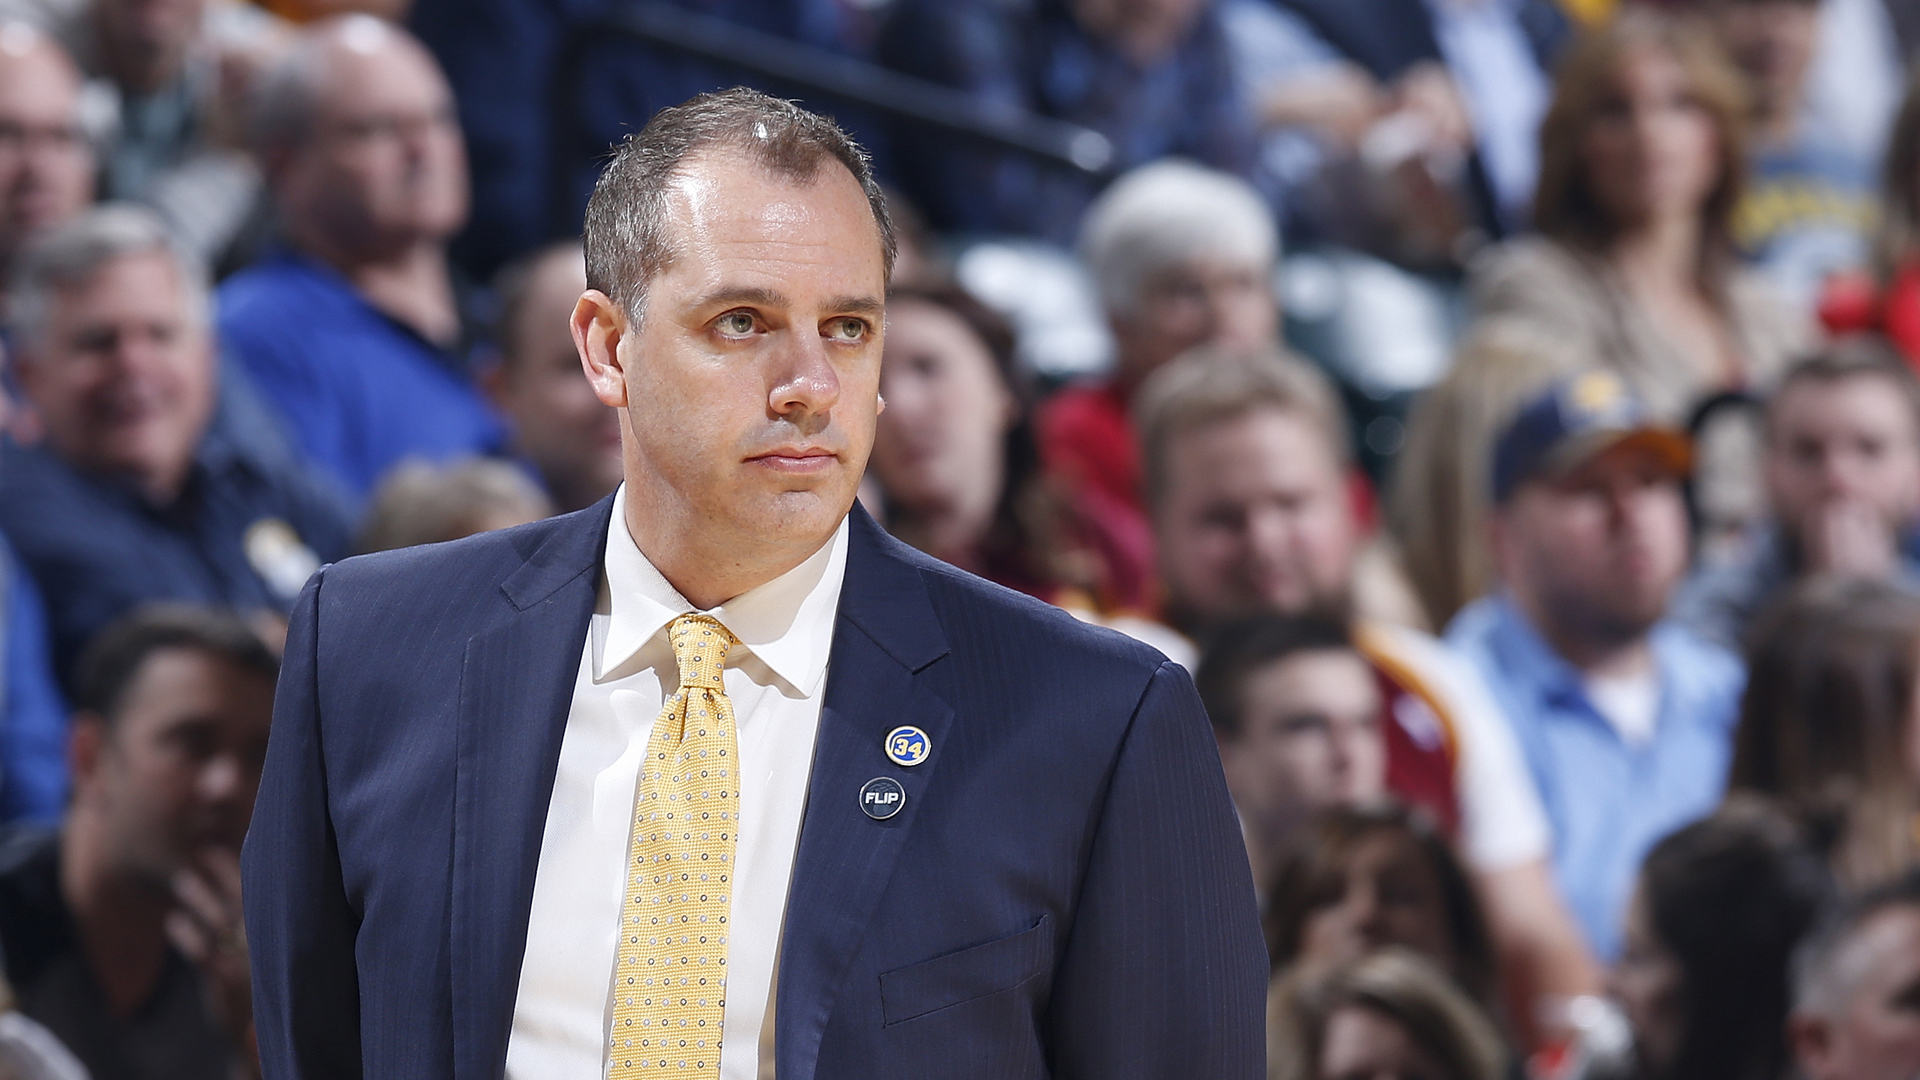 Frank Vogel, then-head coach of the Indiana Pacers, looks on during the team's game against the Cleveland Cavaliers in the first half, at Bankers Life Fieldhouse on Feb. 1, 2016, in Indianapolis, Indiana. (Credit: Joe Robbins/Getty Images)